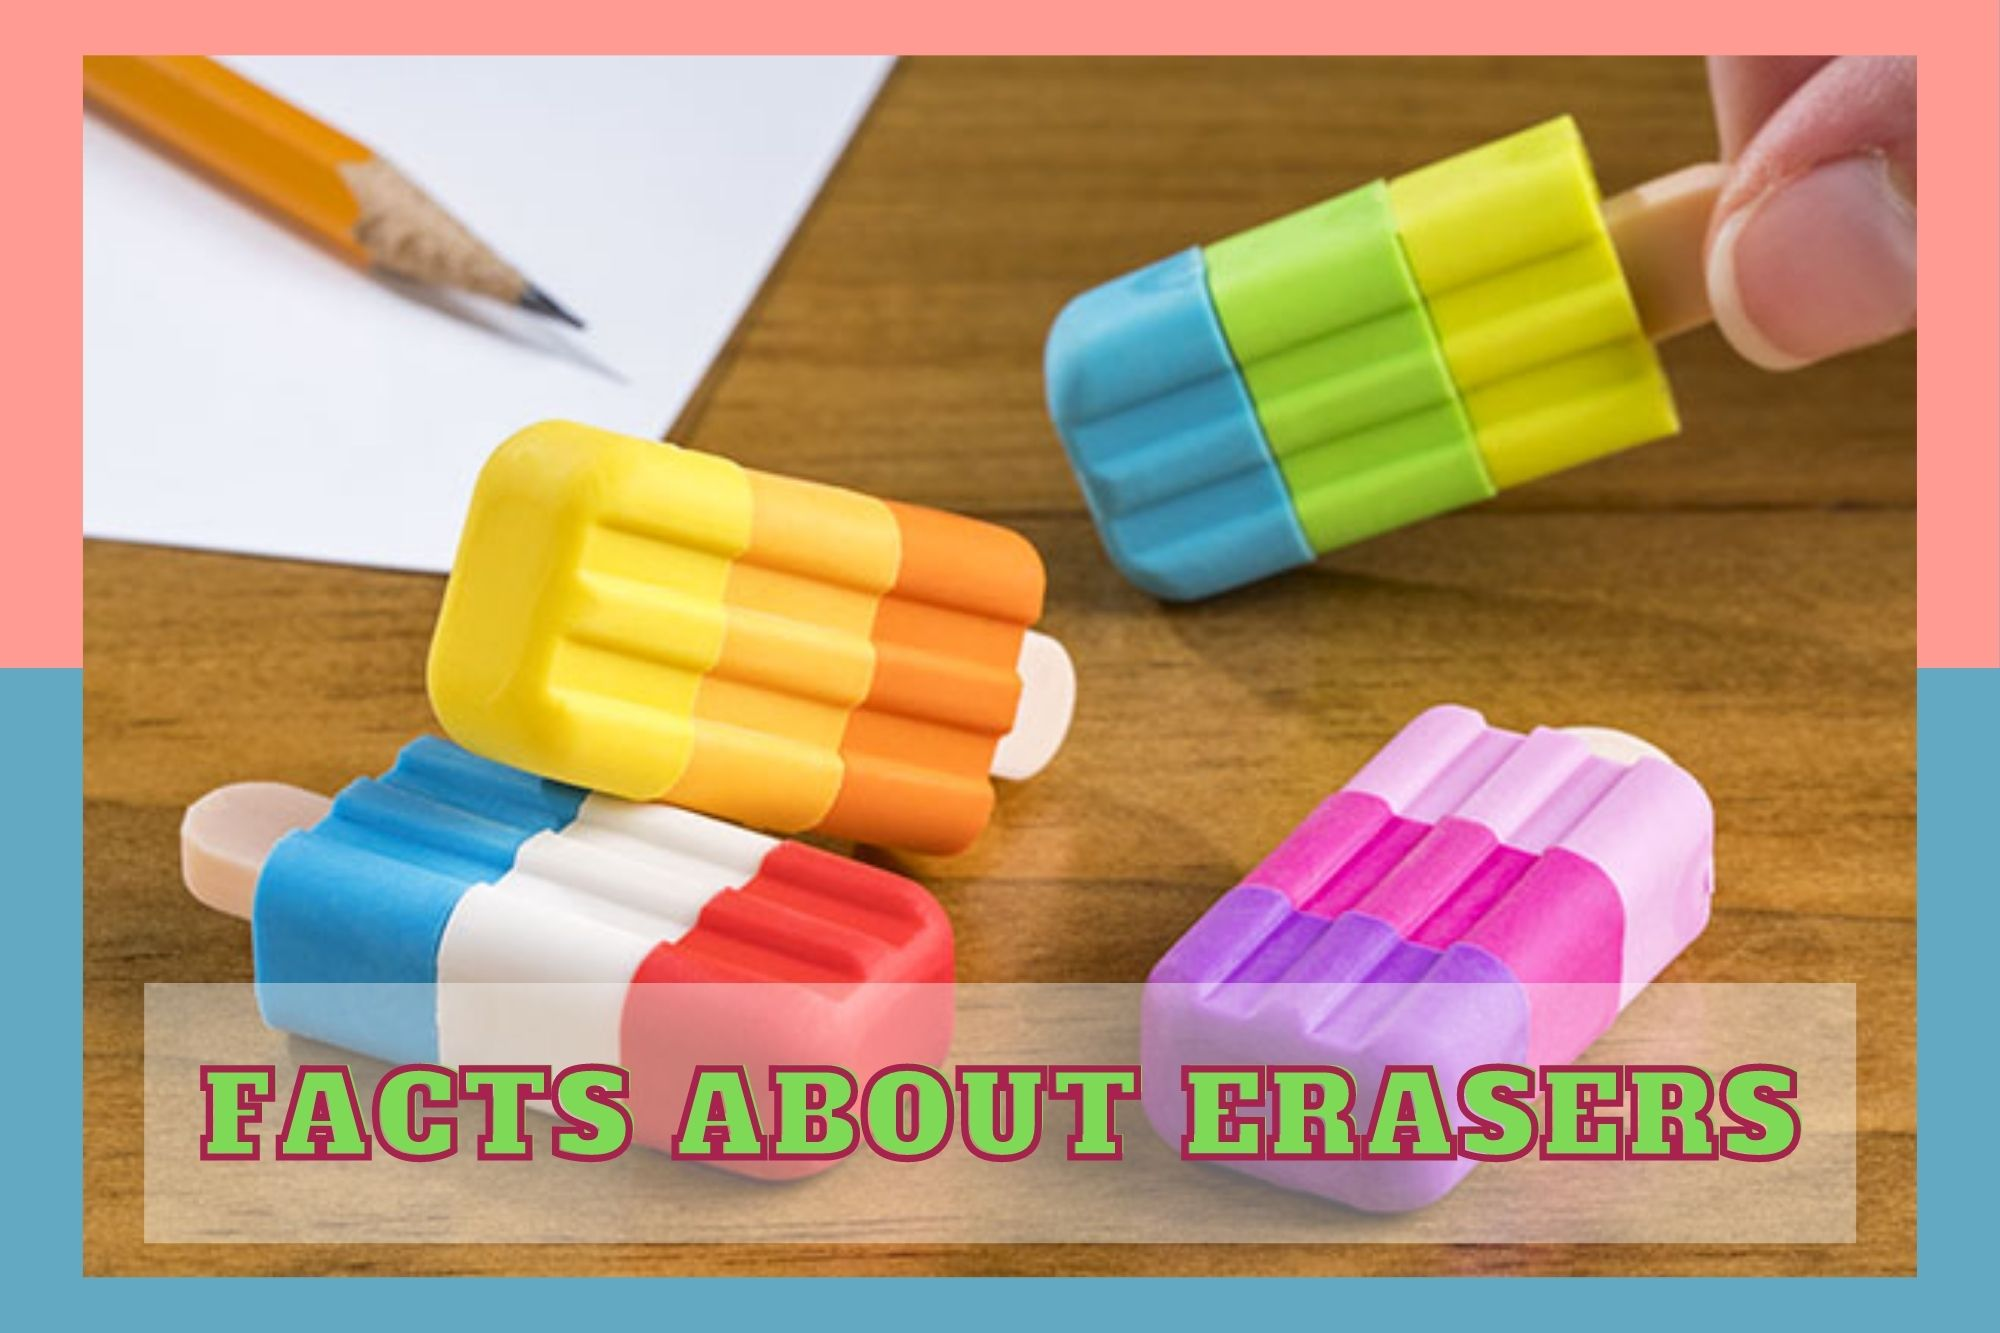 Facts About Erasers